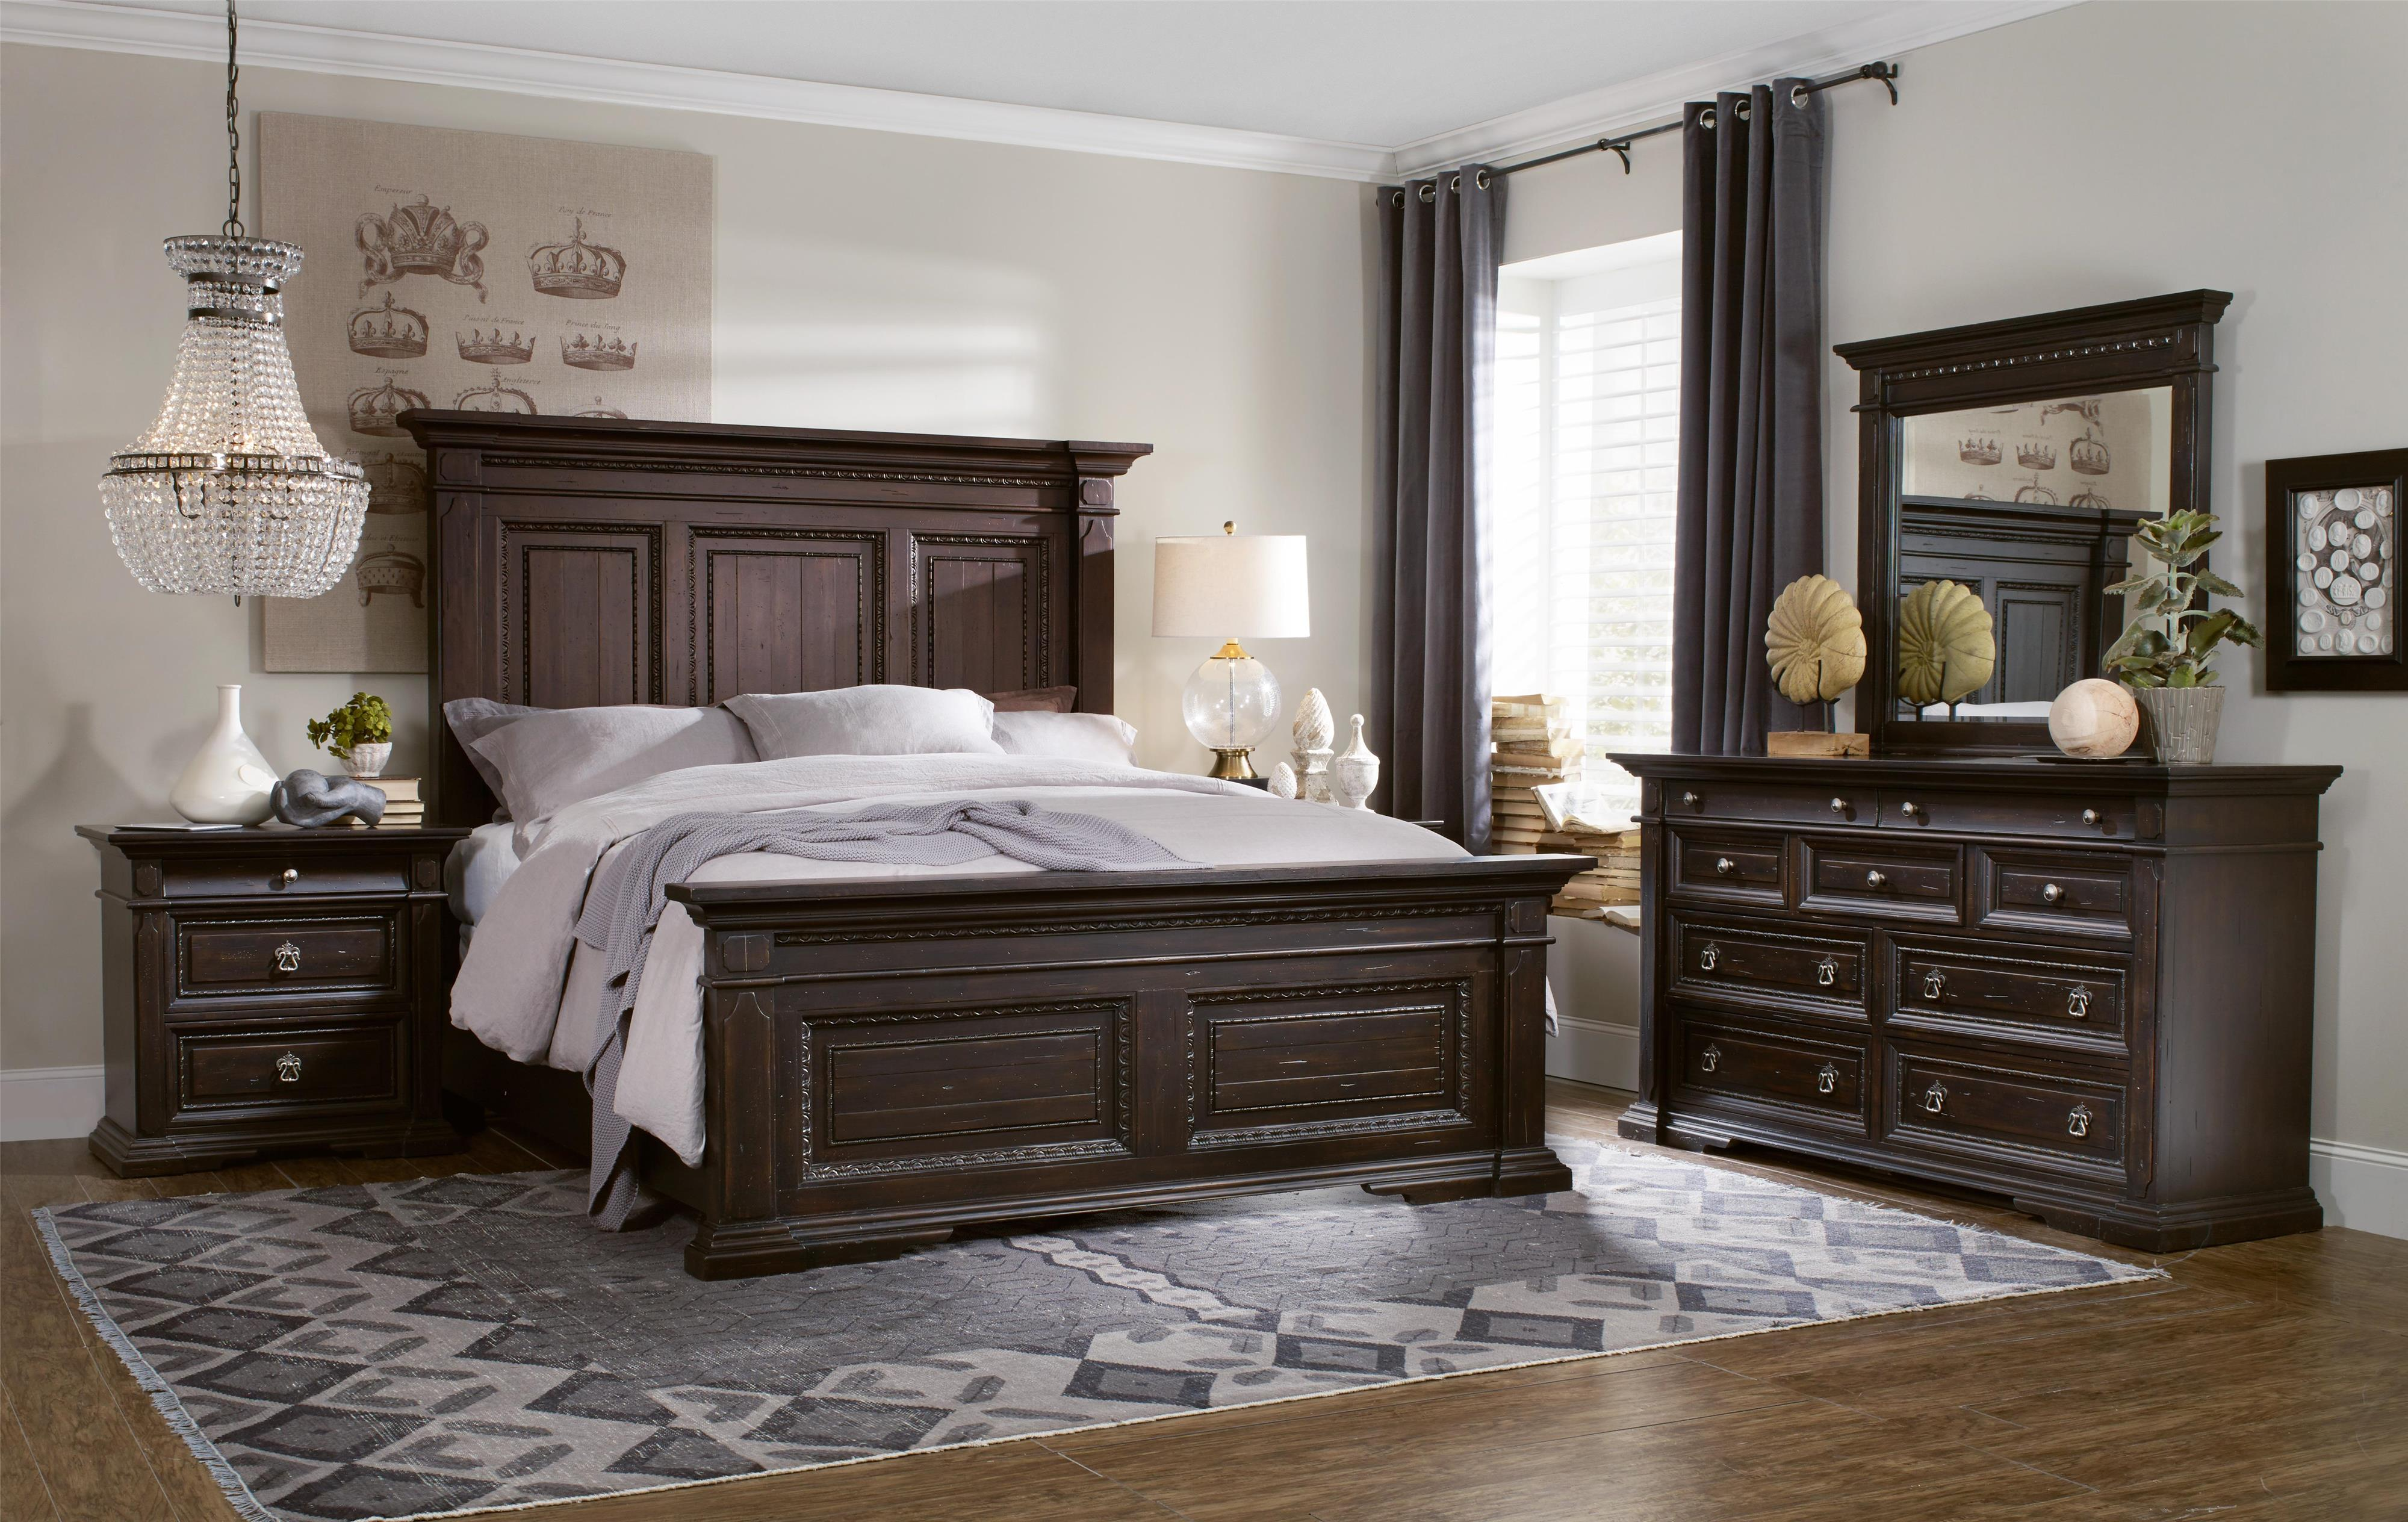 Treviso Queen Bedroom Group by Hooker Furniture at Baer's Furniture